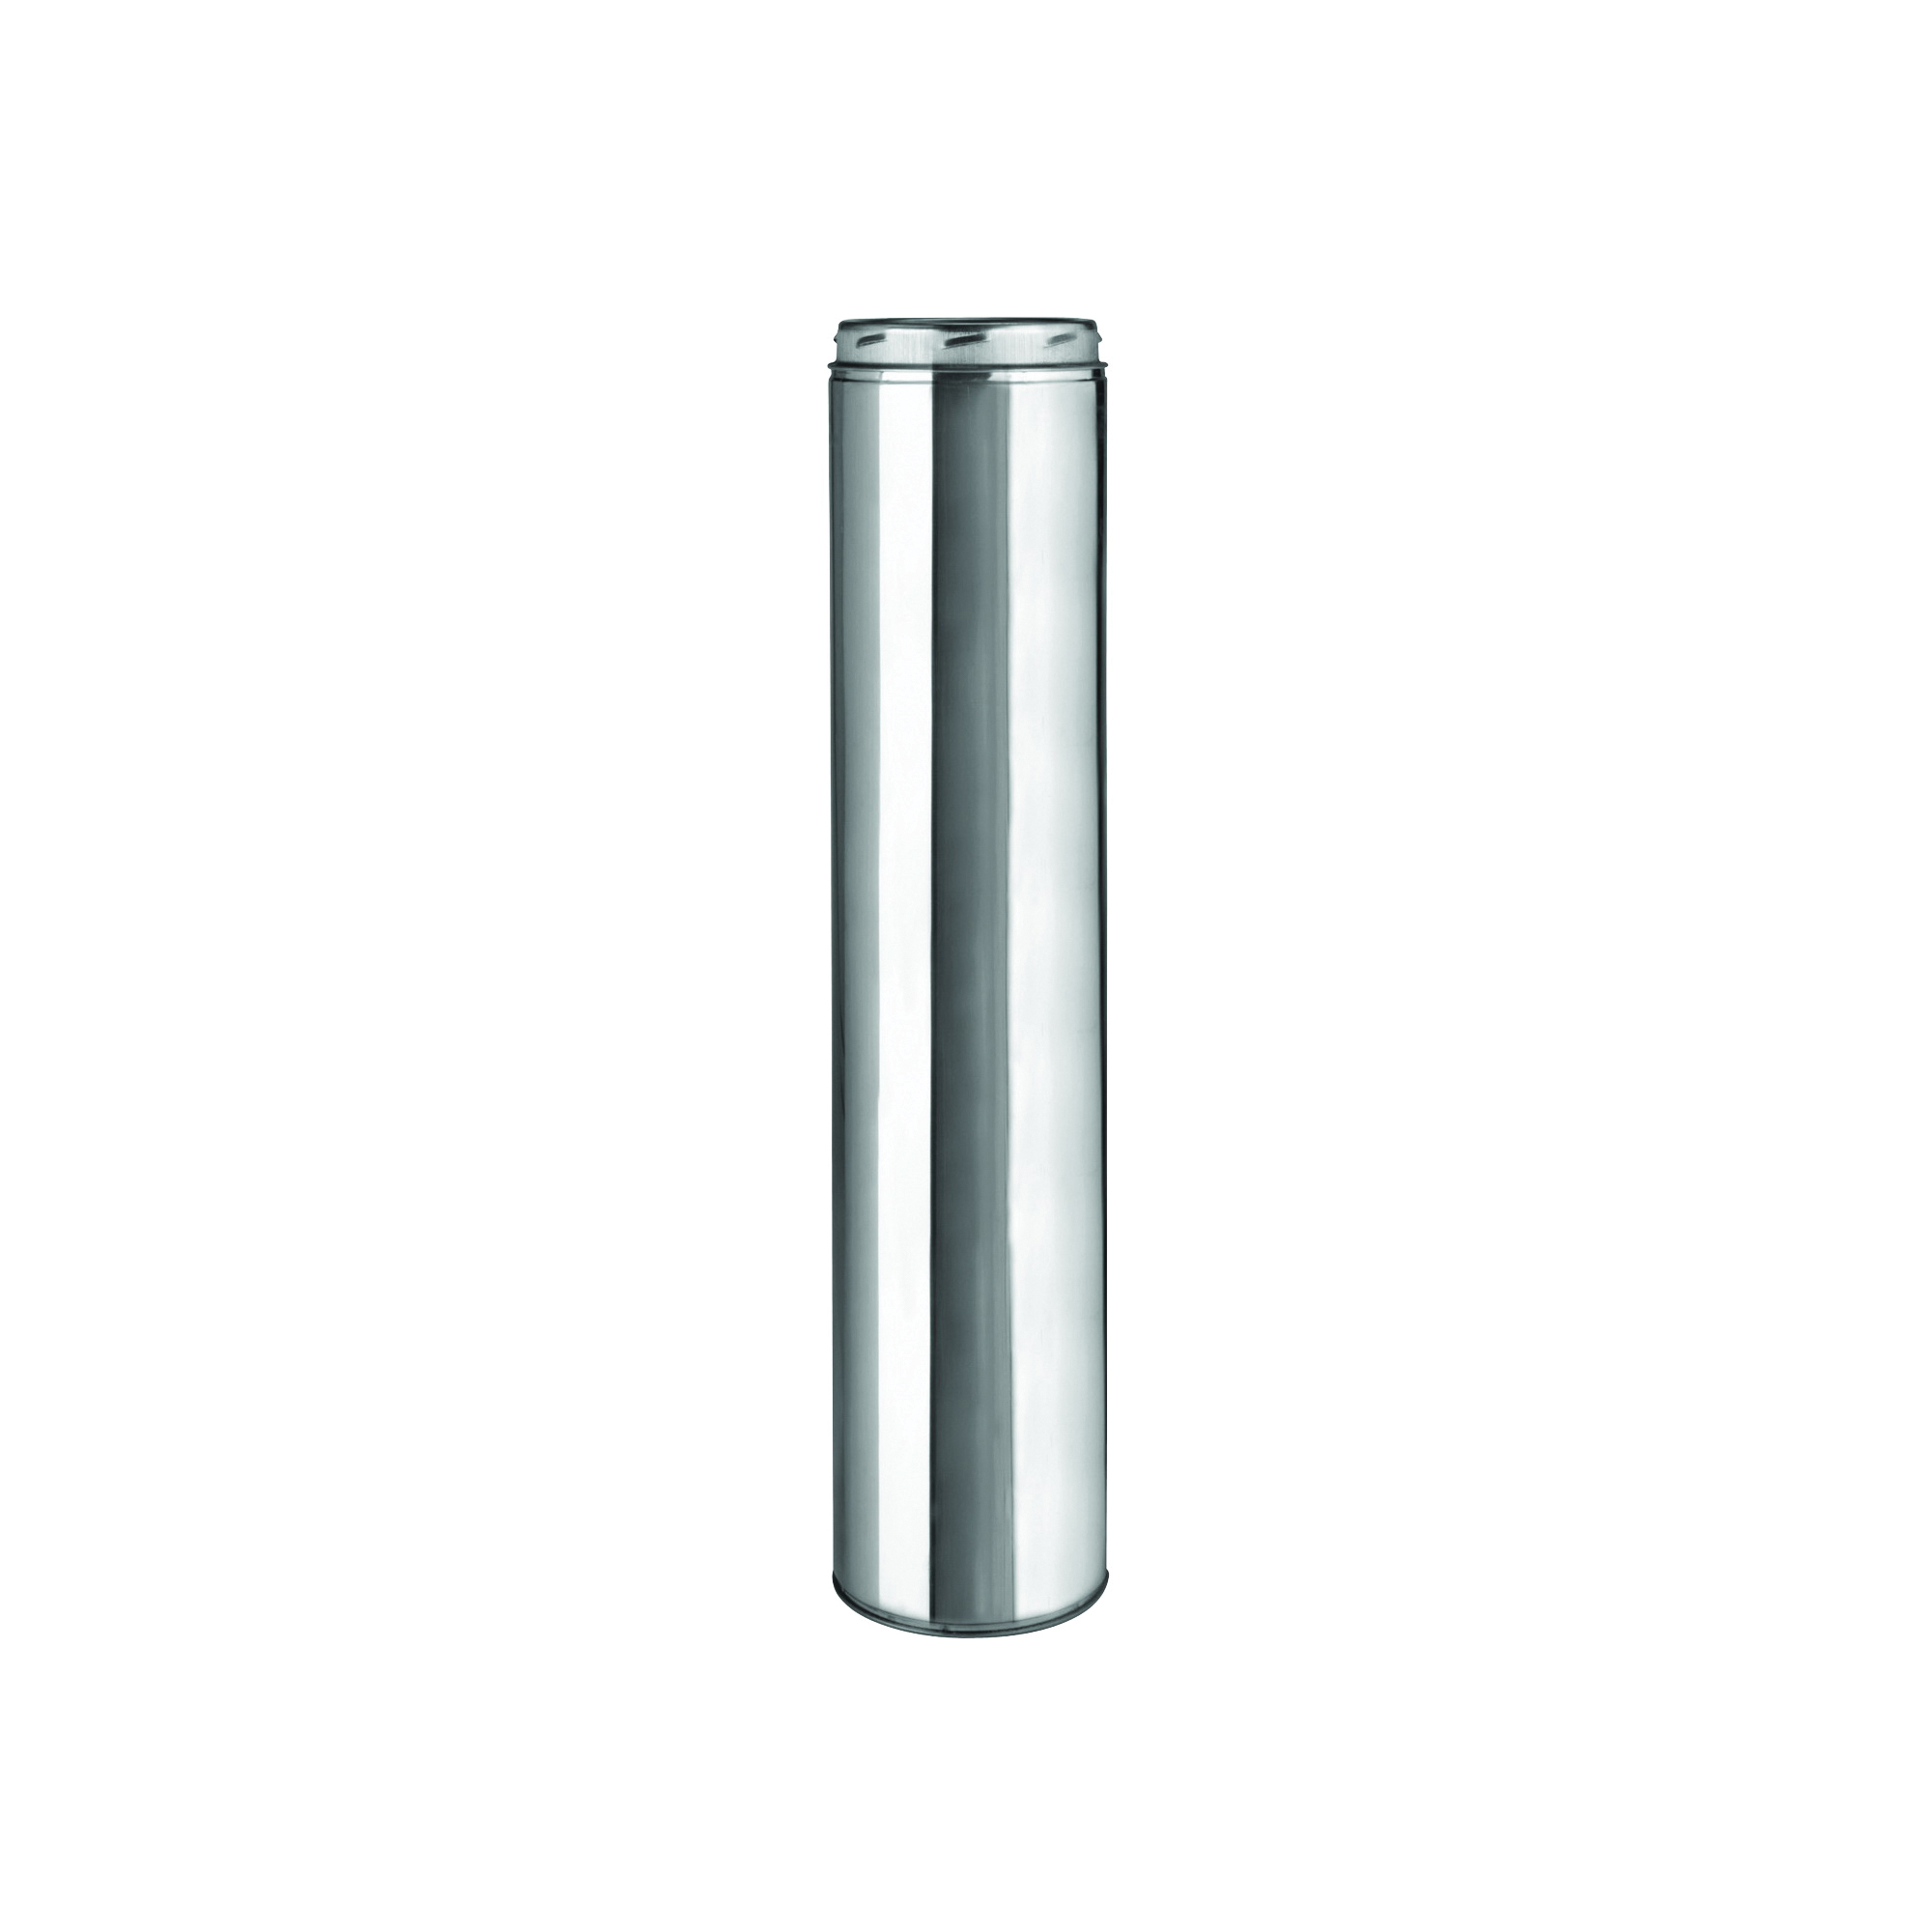 Picture of SELKIRK 208036 Chimney Pipe, 10 in OD, 36 in L, Stainless Steel